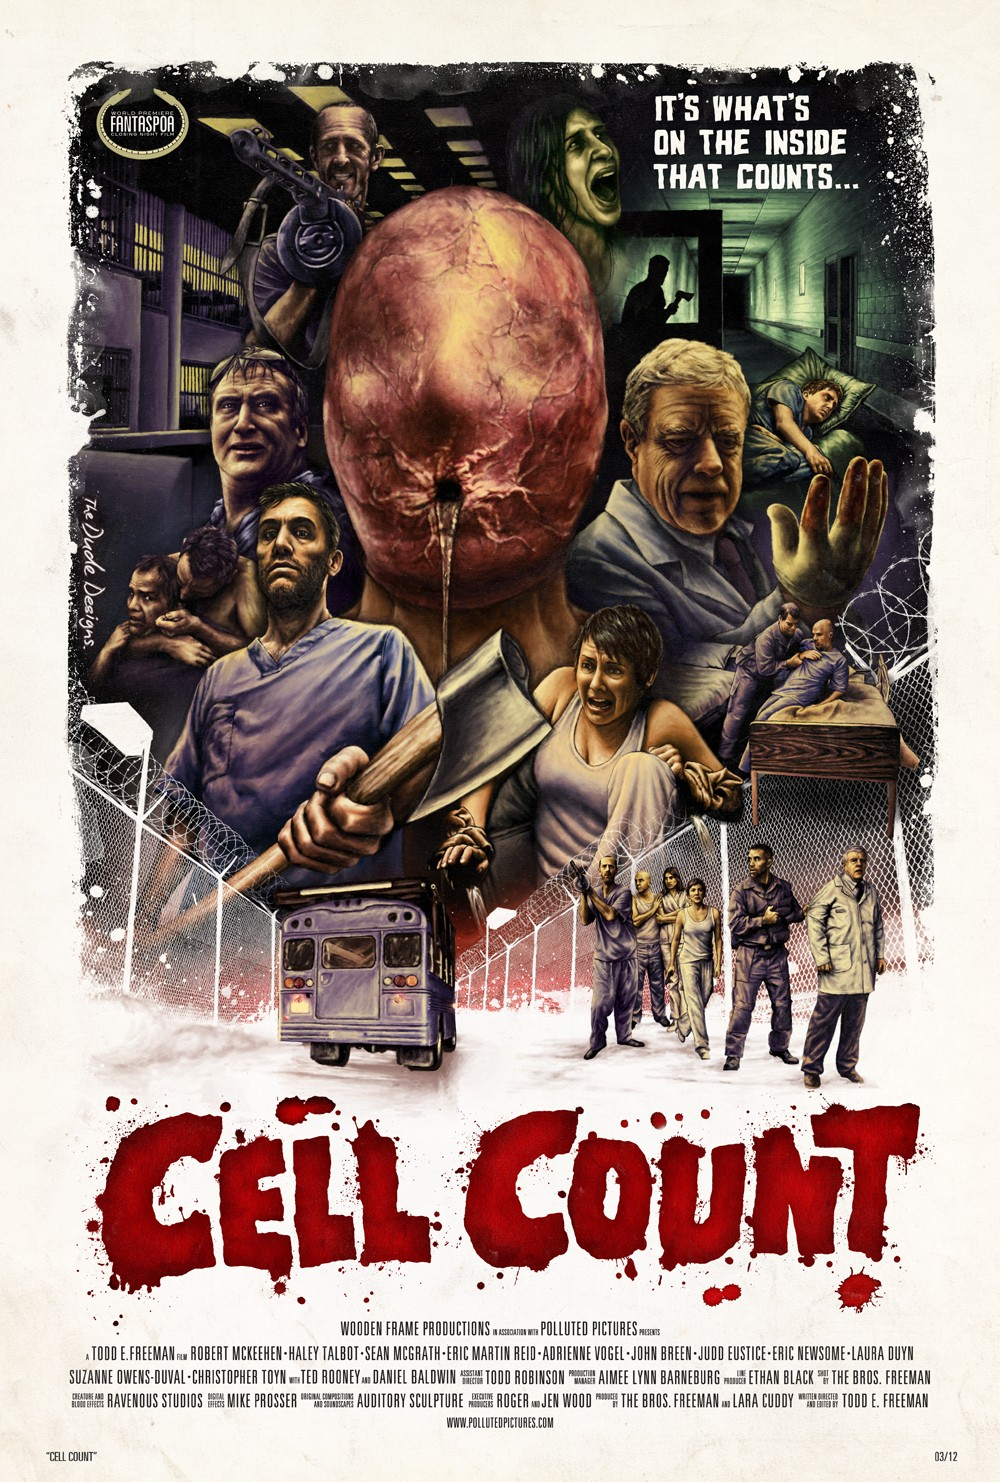 Call Count poster (Tom Hodge)